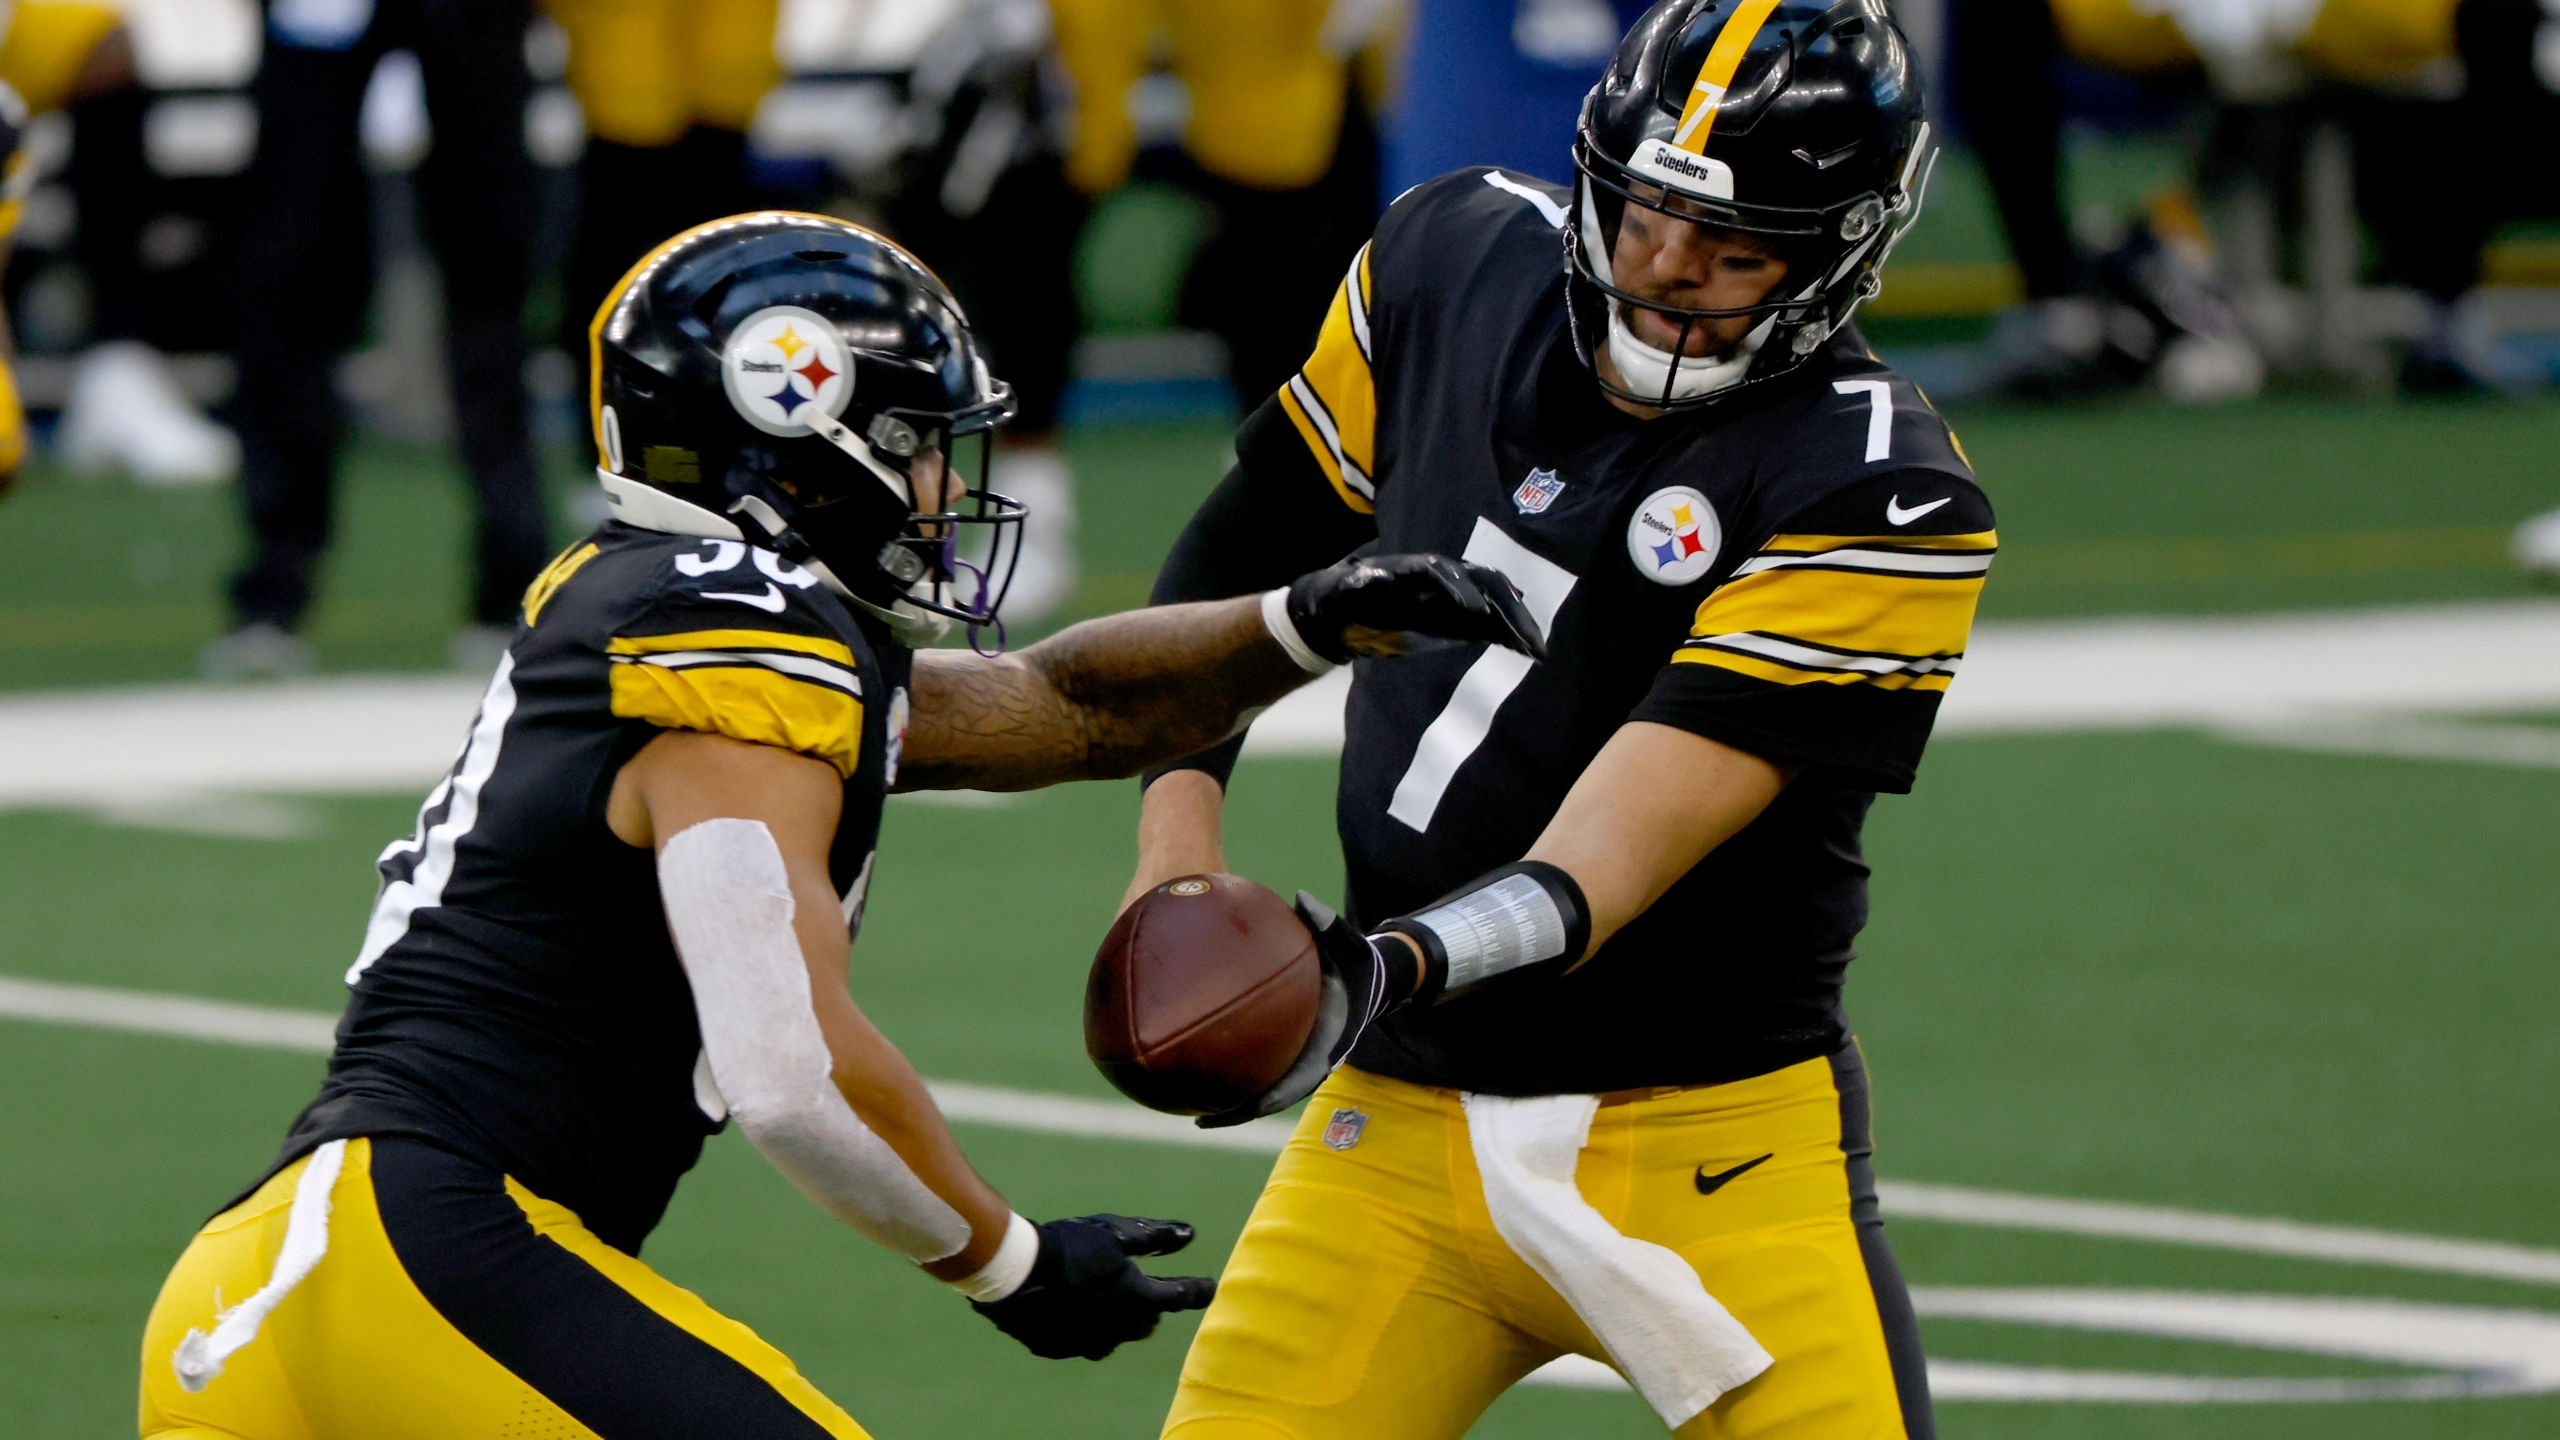 2020 Travel To Canada For Christmas With A Misdemeanor Steelers' Roethlisberger, 3 teammates go on COVID 19 list   WWTI